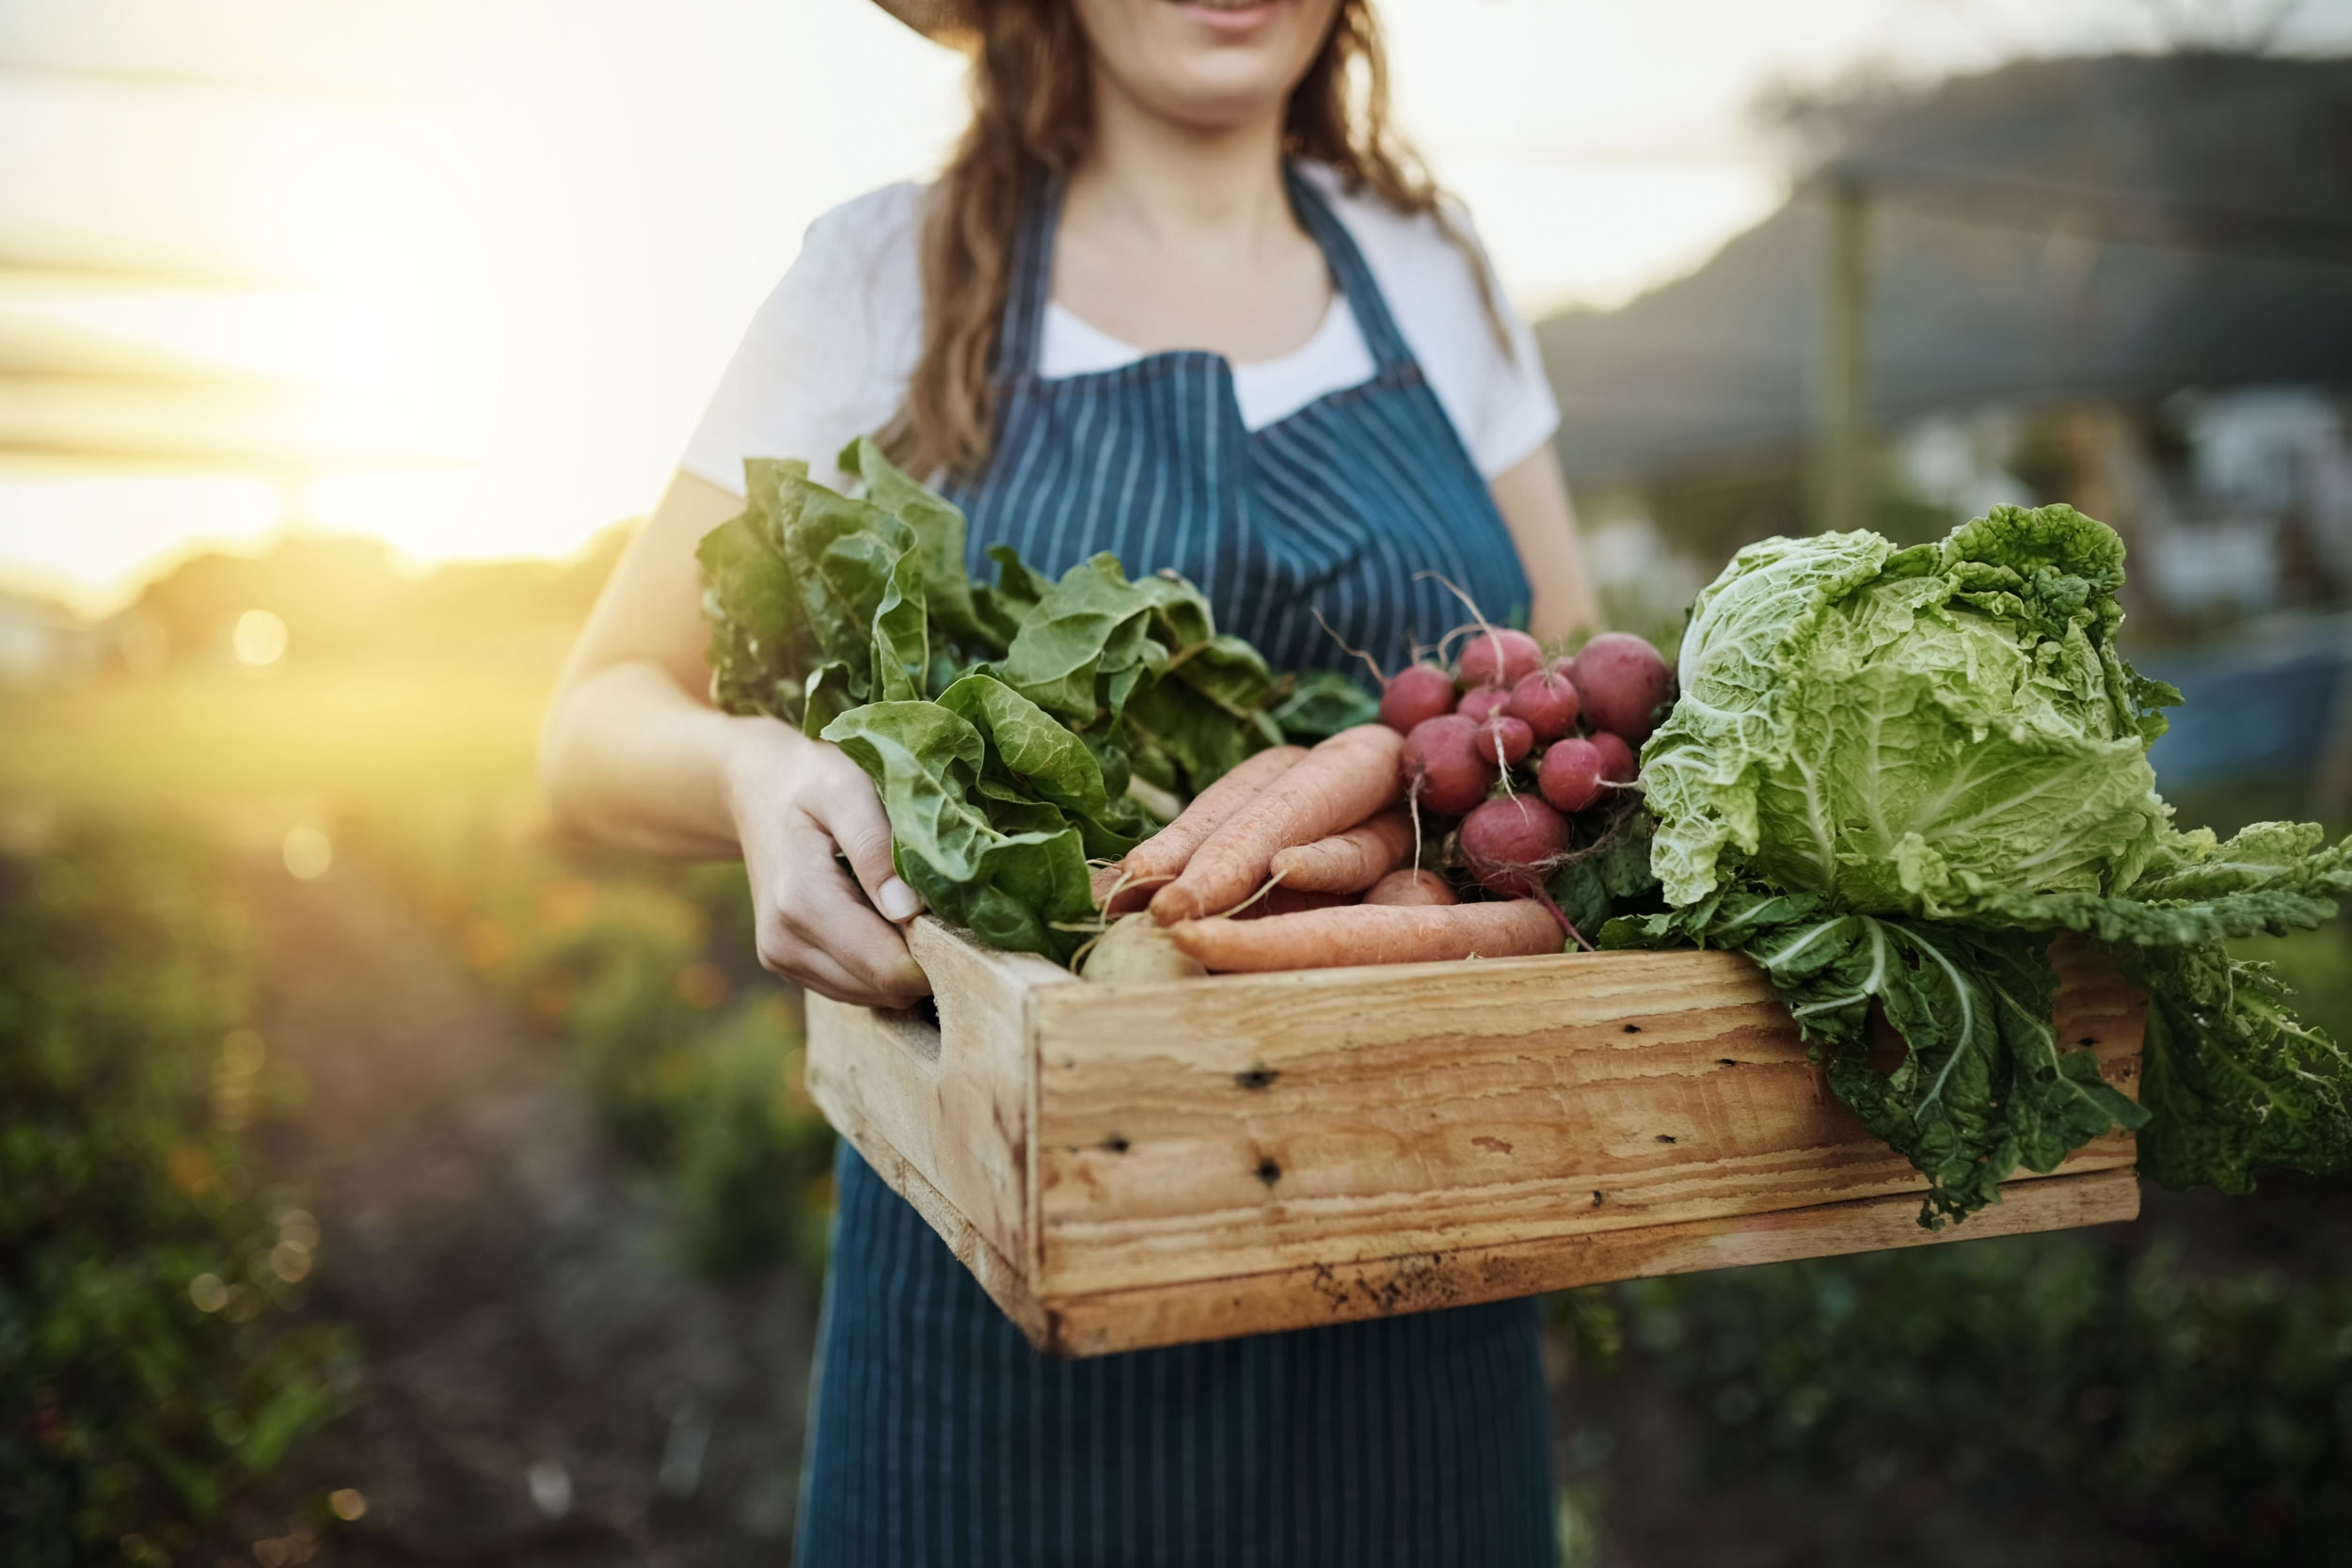 A woman carrying a wooden box of carrots, lettuce and other freshly picked vegetables.